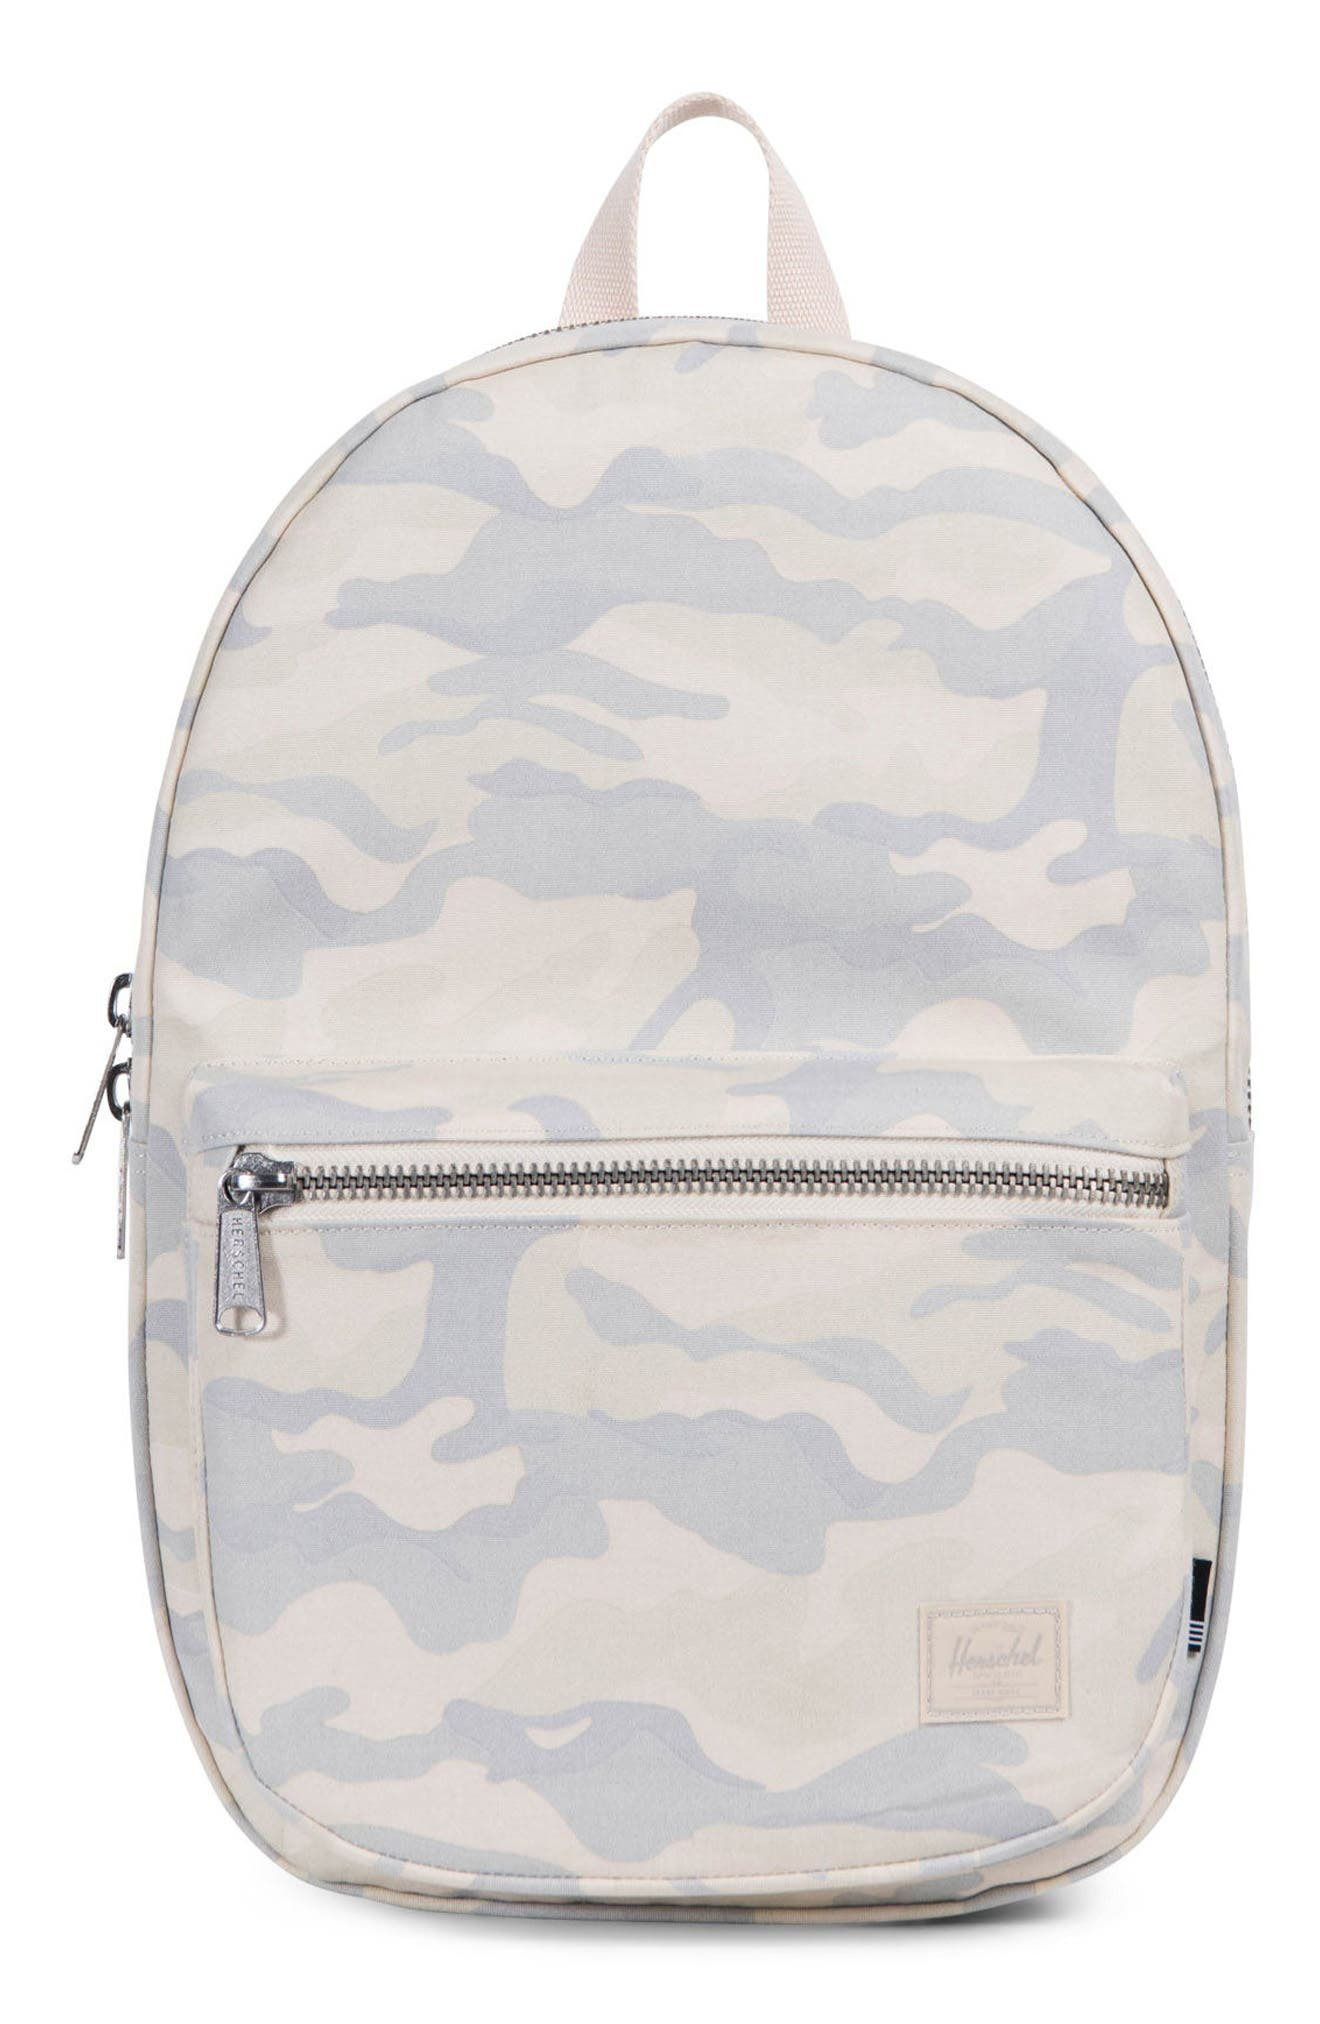 Lawson Backpack,                         Main,                         color, 250